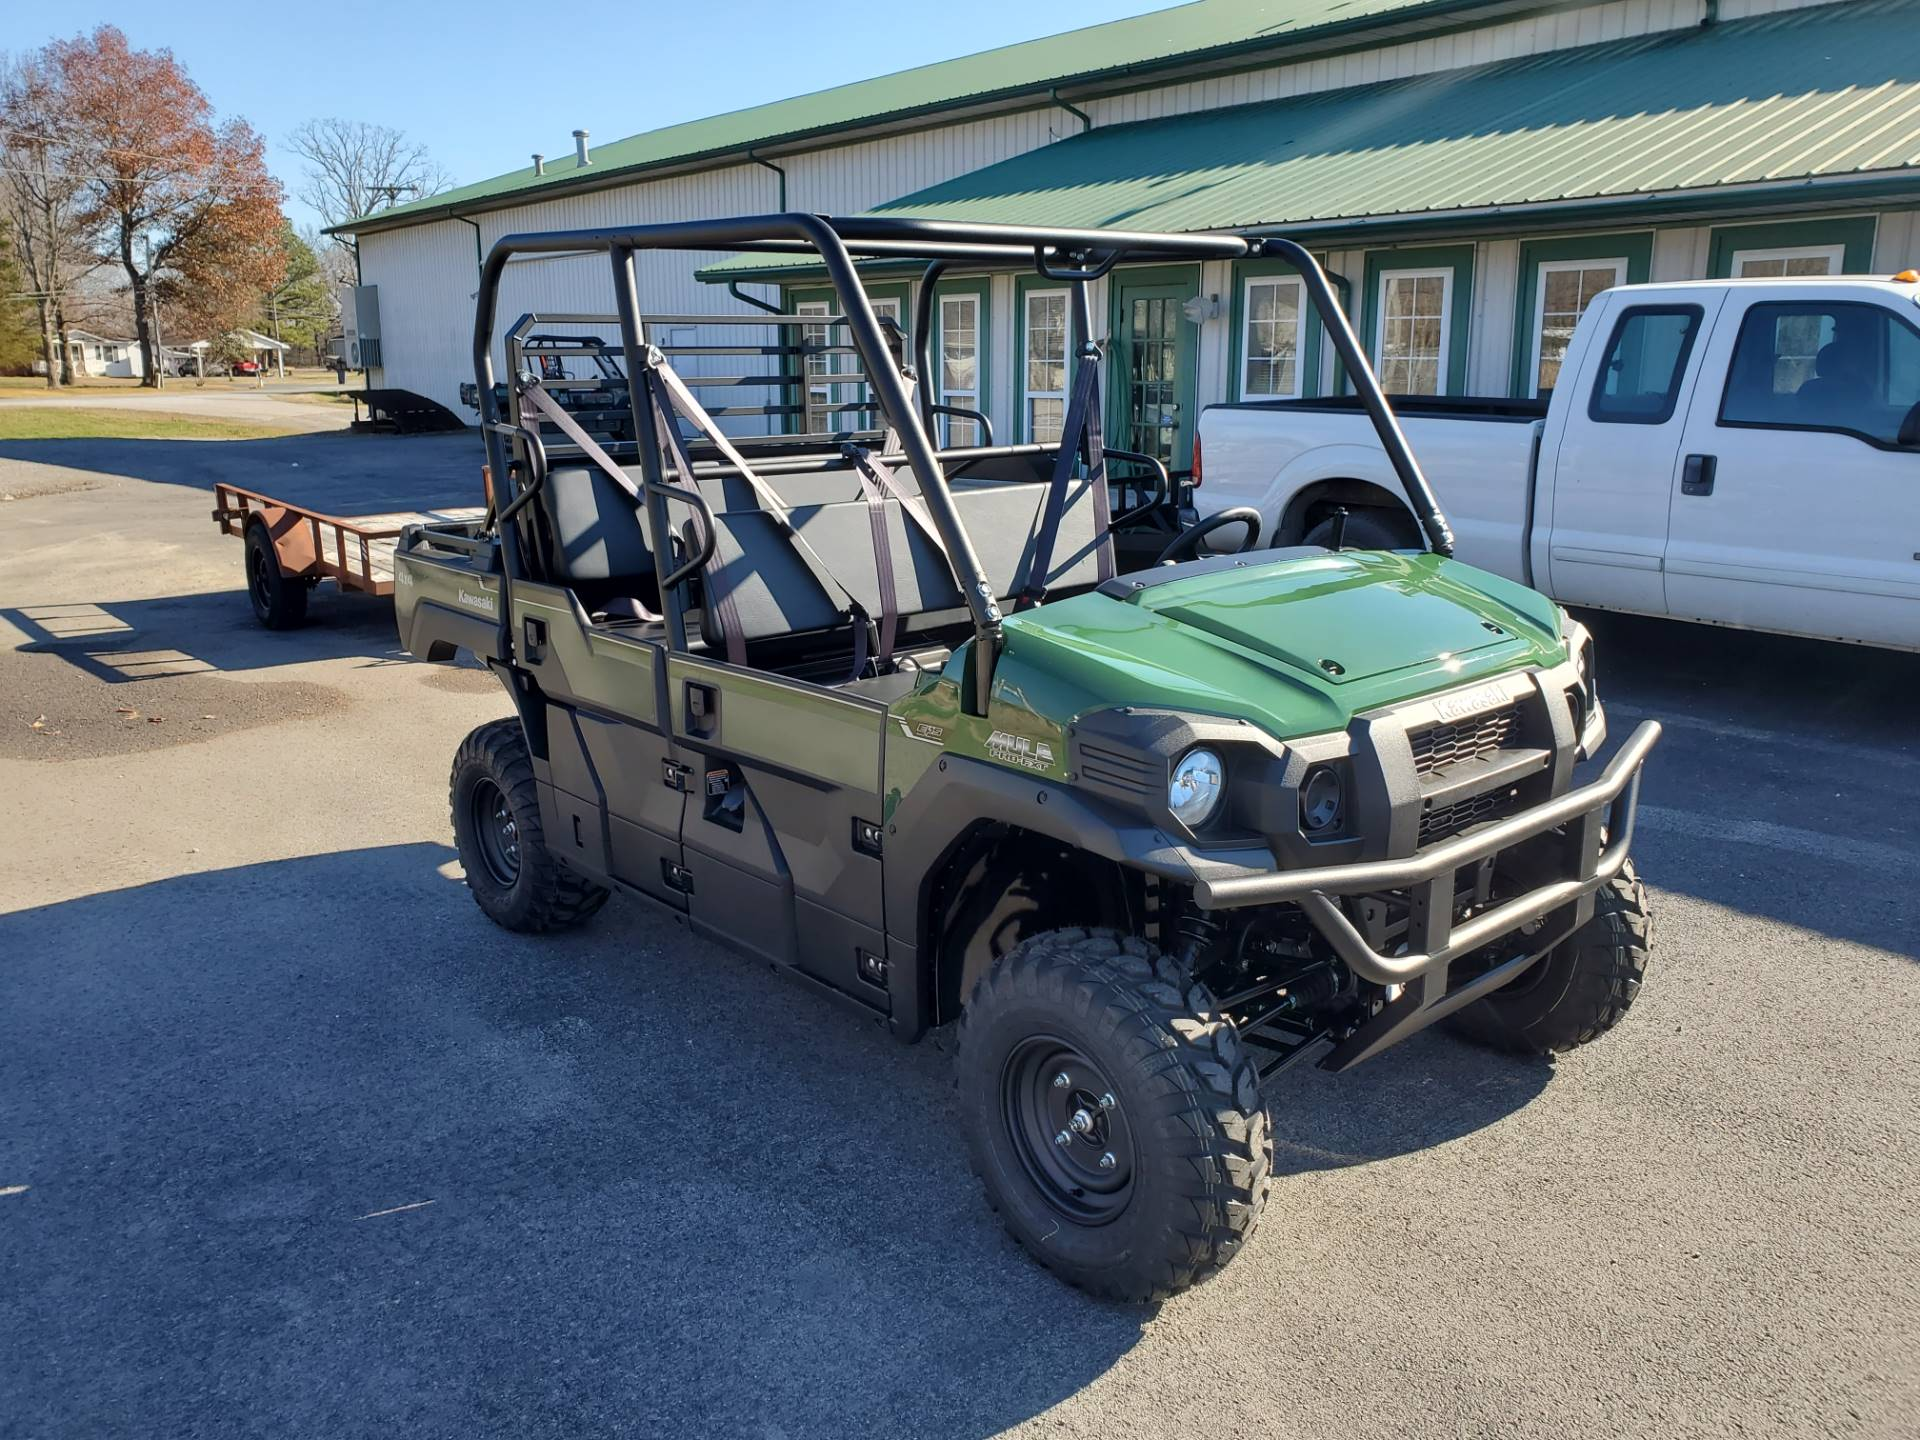 2021 Kawasaki Mule PRO-FXT EPS in Herrin, Illinois - Photo 3